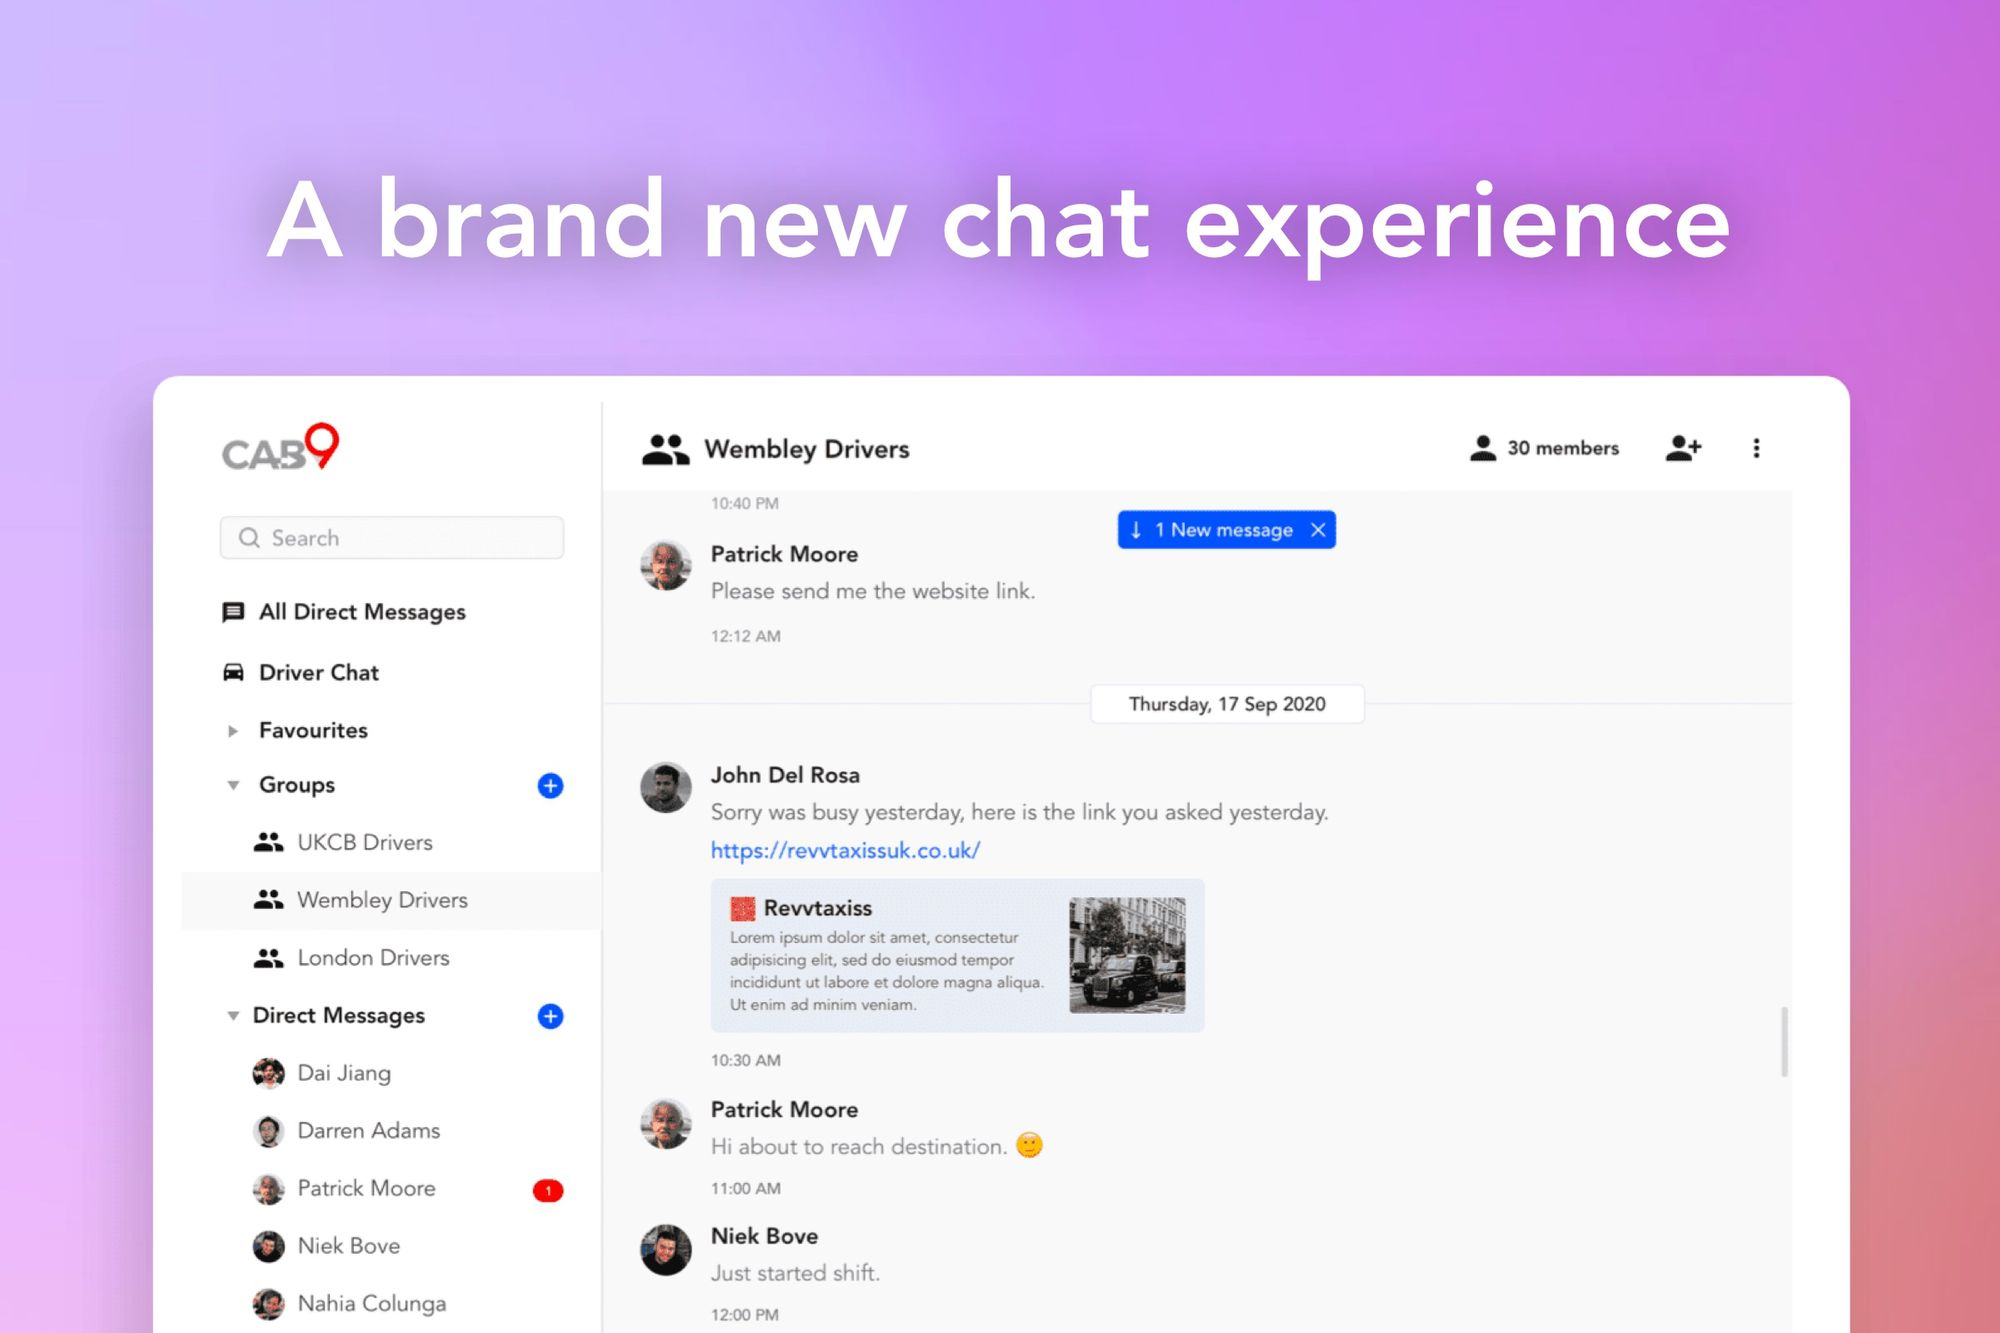 Cab9 Chat - New Communications Platform